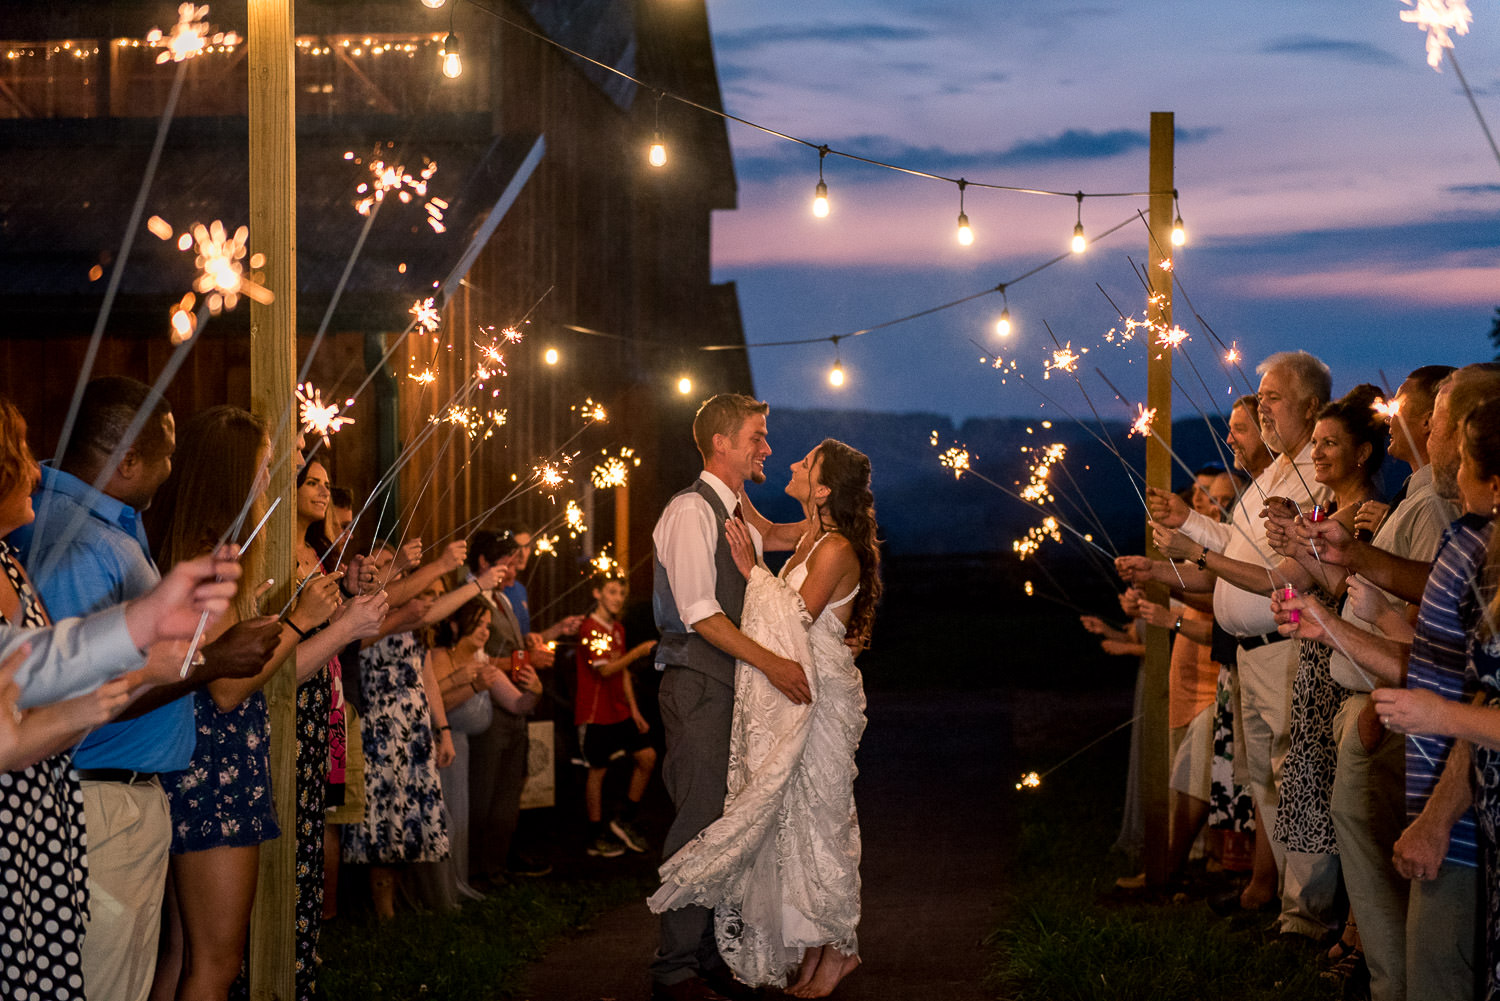 Bride and groom pose for portrait amid guests holding sparklers